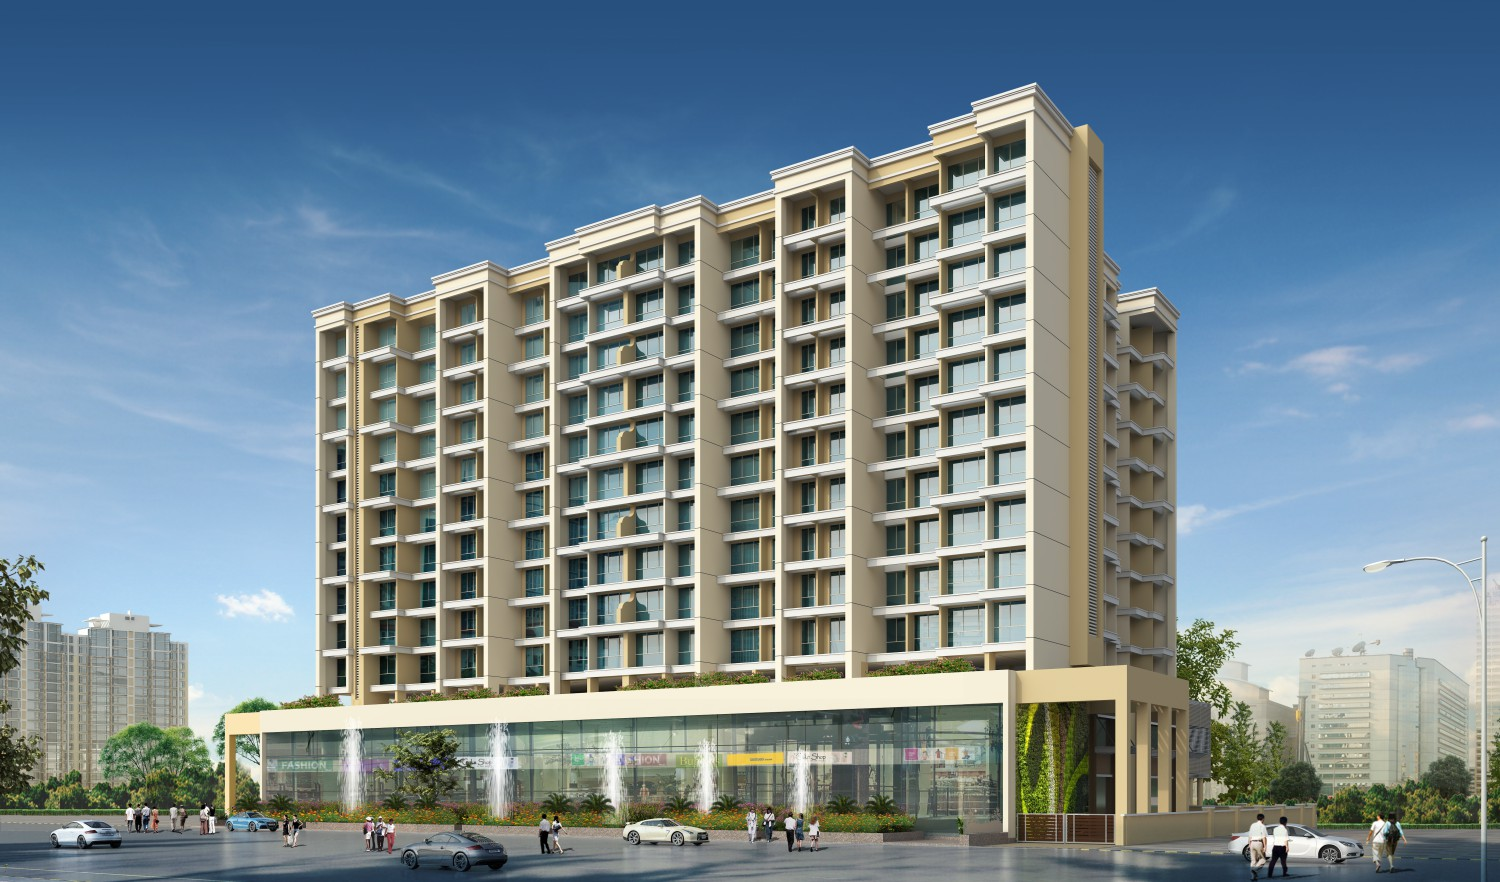 1 & 2 BHK Luxury Flats, Shops & Offices in Opp. D-Mart, New Panvel (E) - 410206 in Millennium Hilton